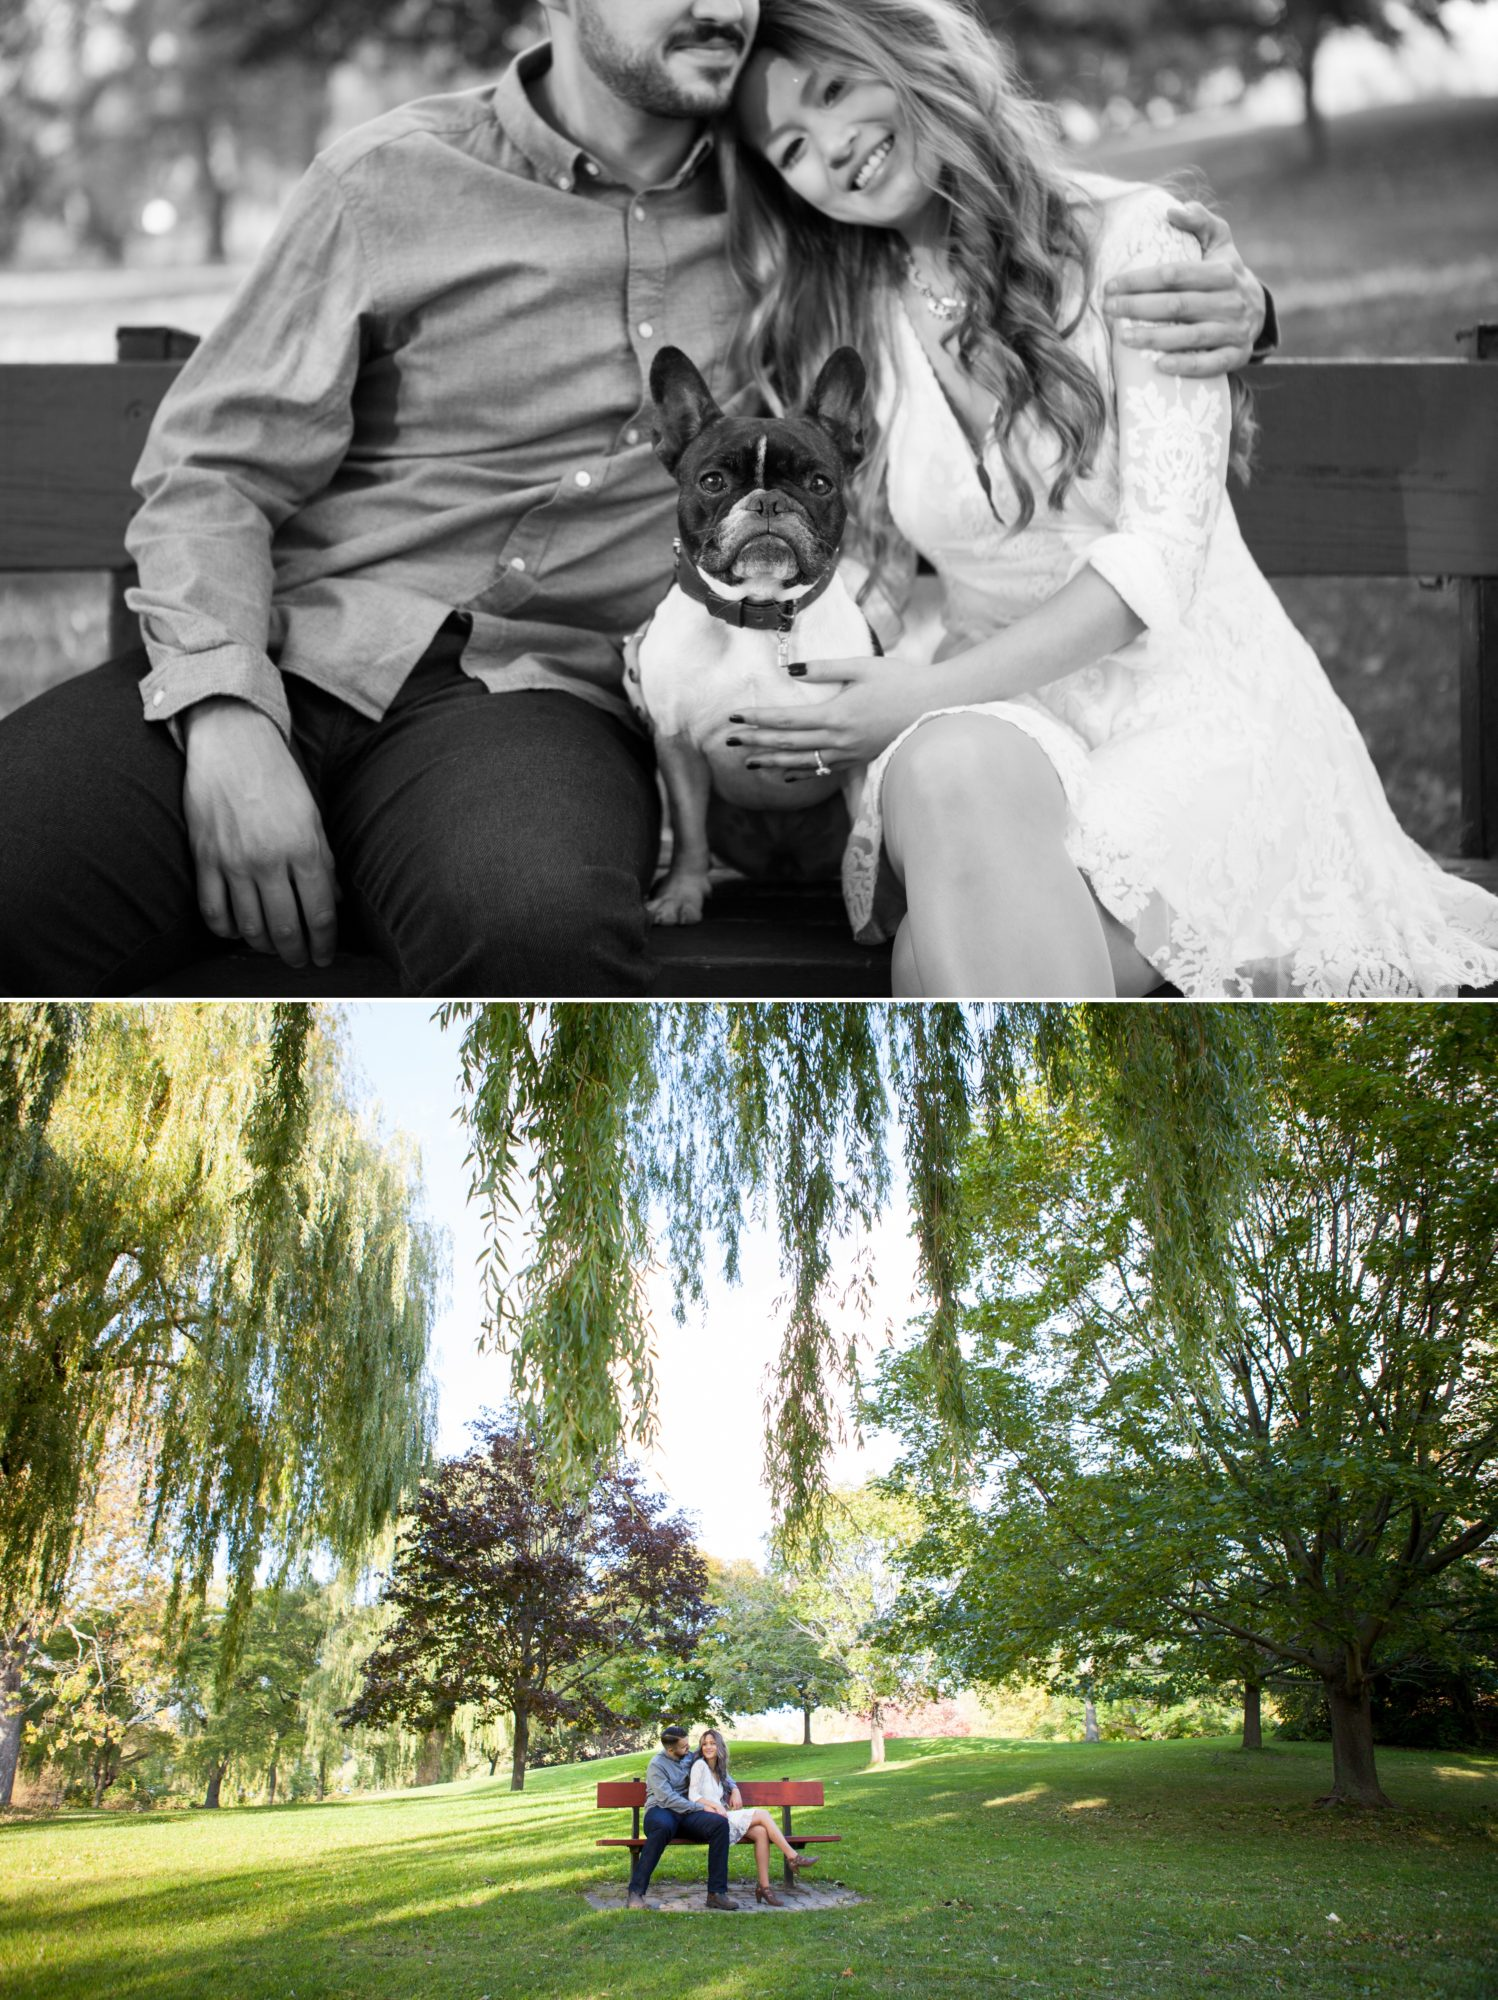 Frenchie Toronto Island Engagement Shoot Zsuzsi Pal Photography Dog